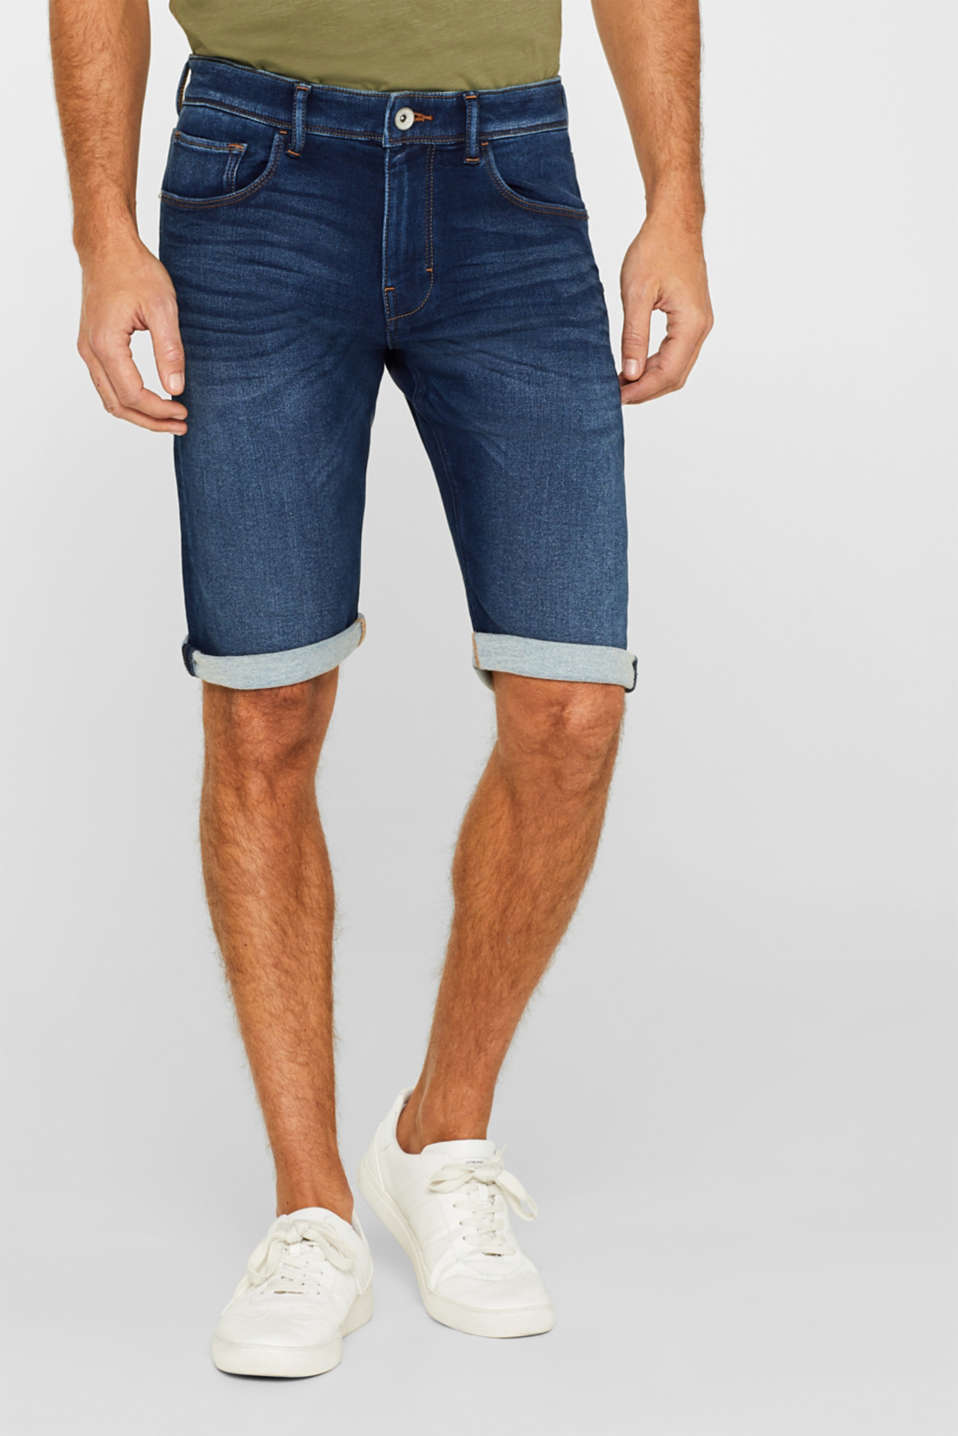 Esprit - Denimshorts med superstretch i jogger-kvalitet